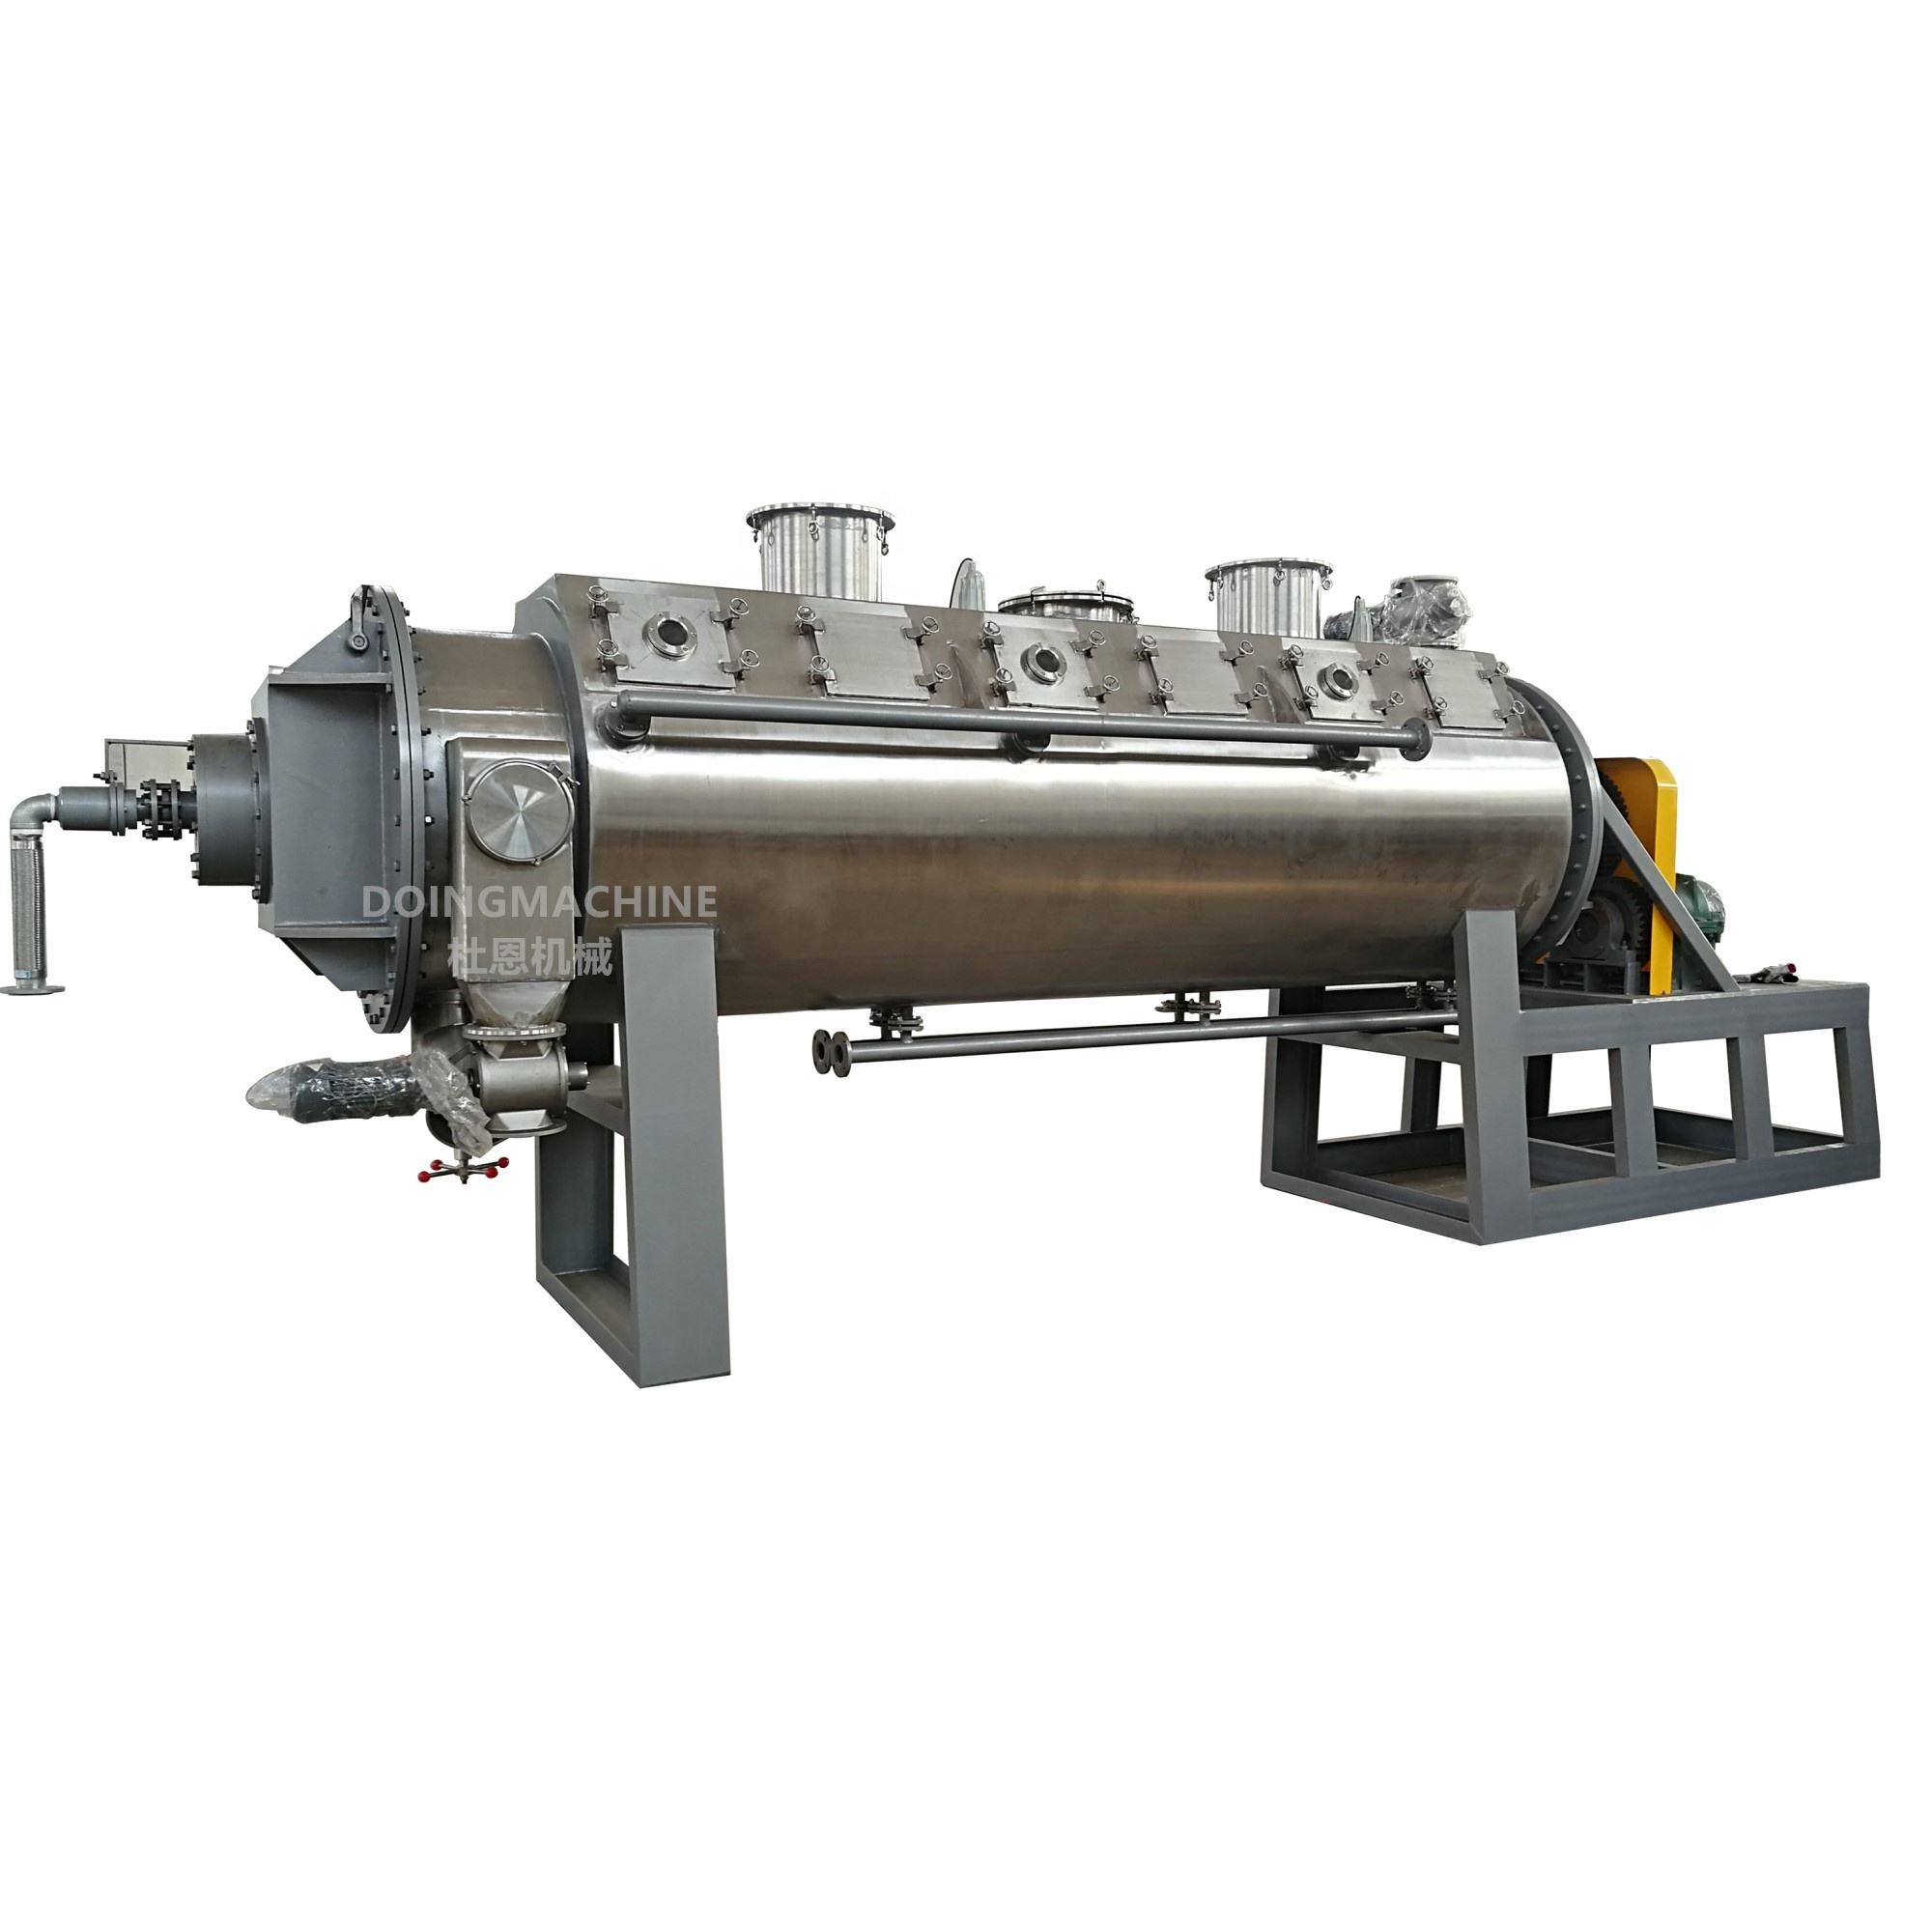 PZG series rotary vacuum paddle dryer